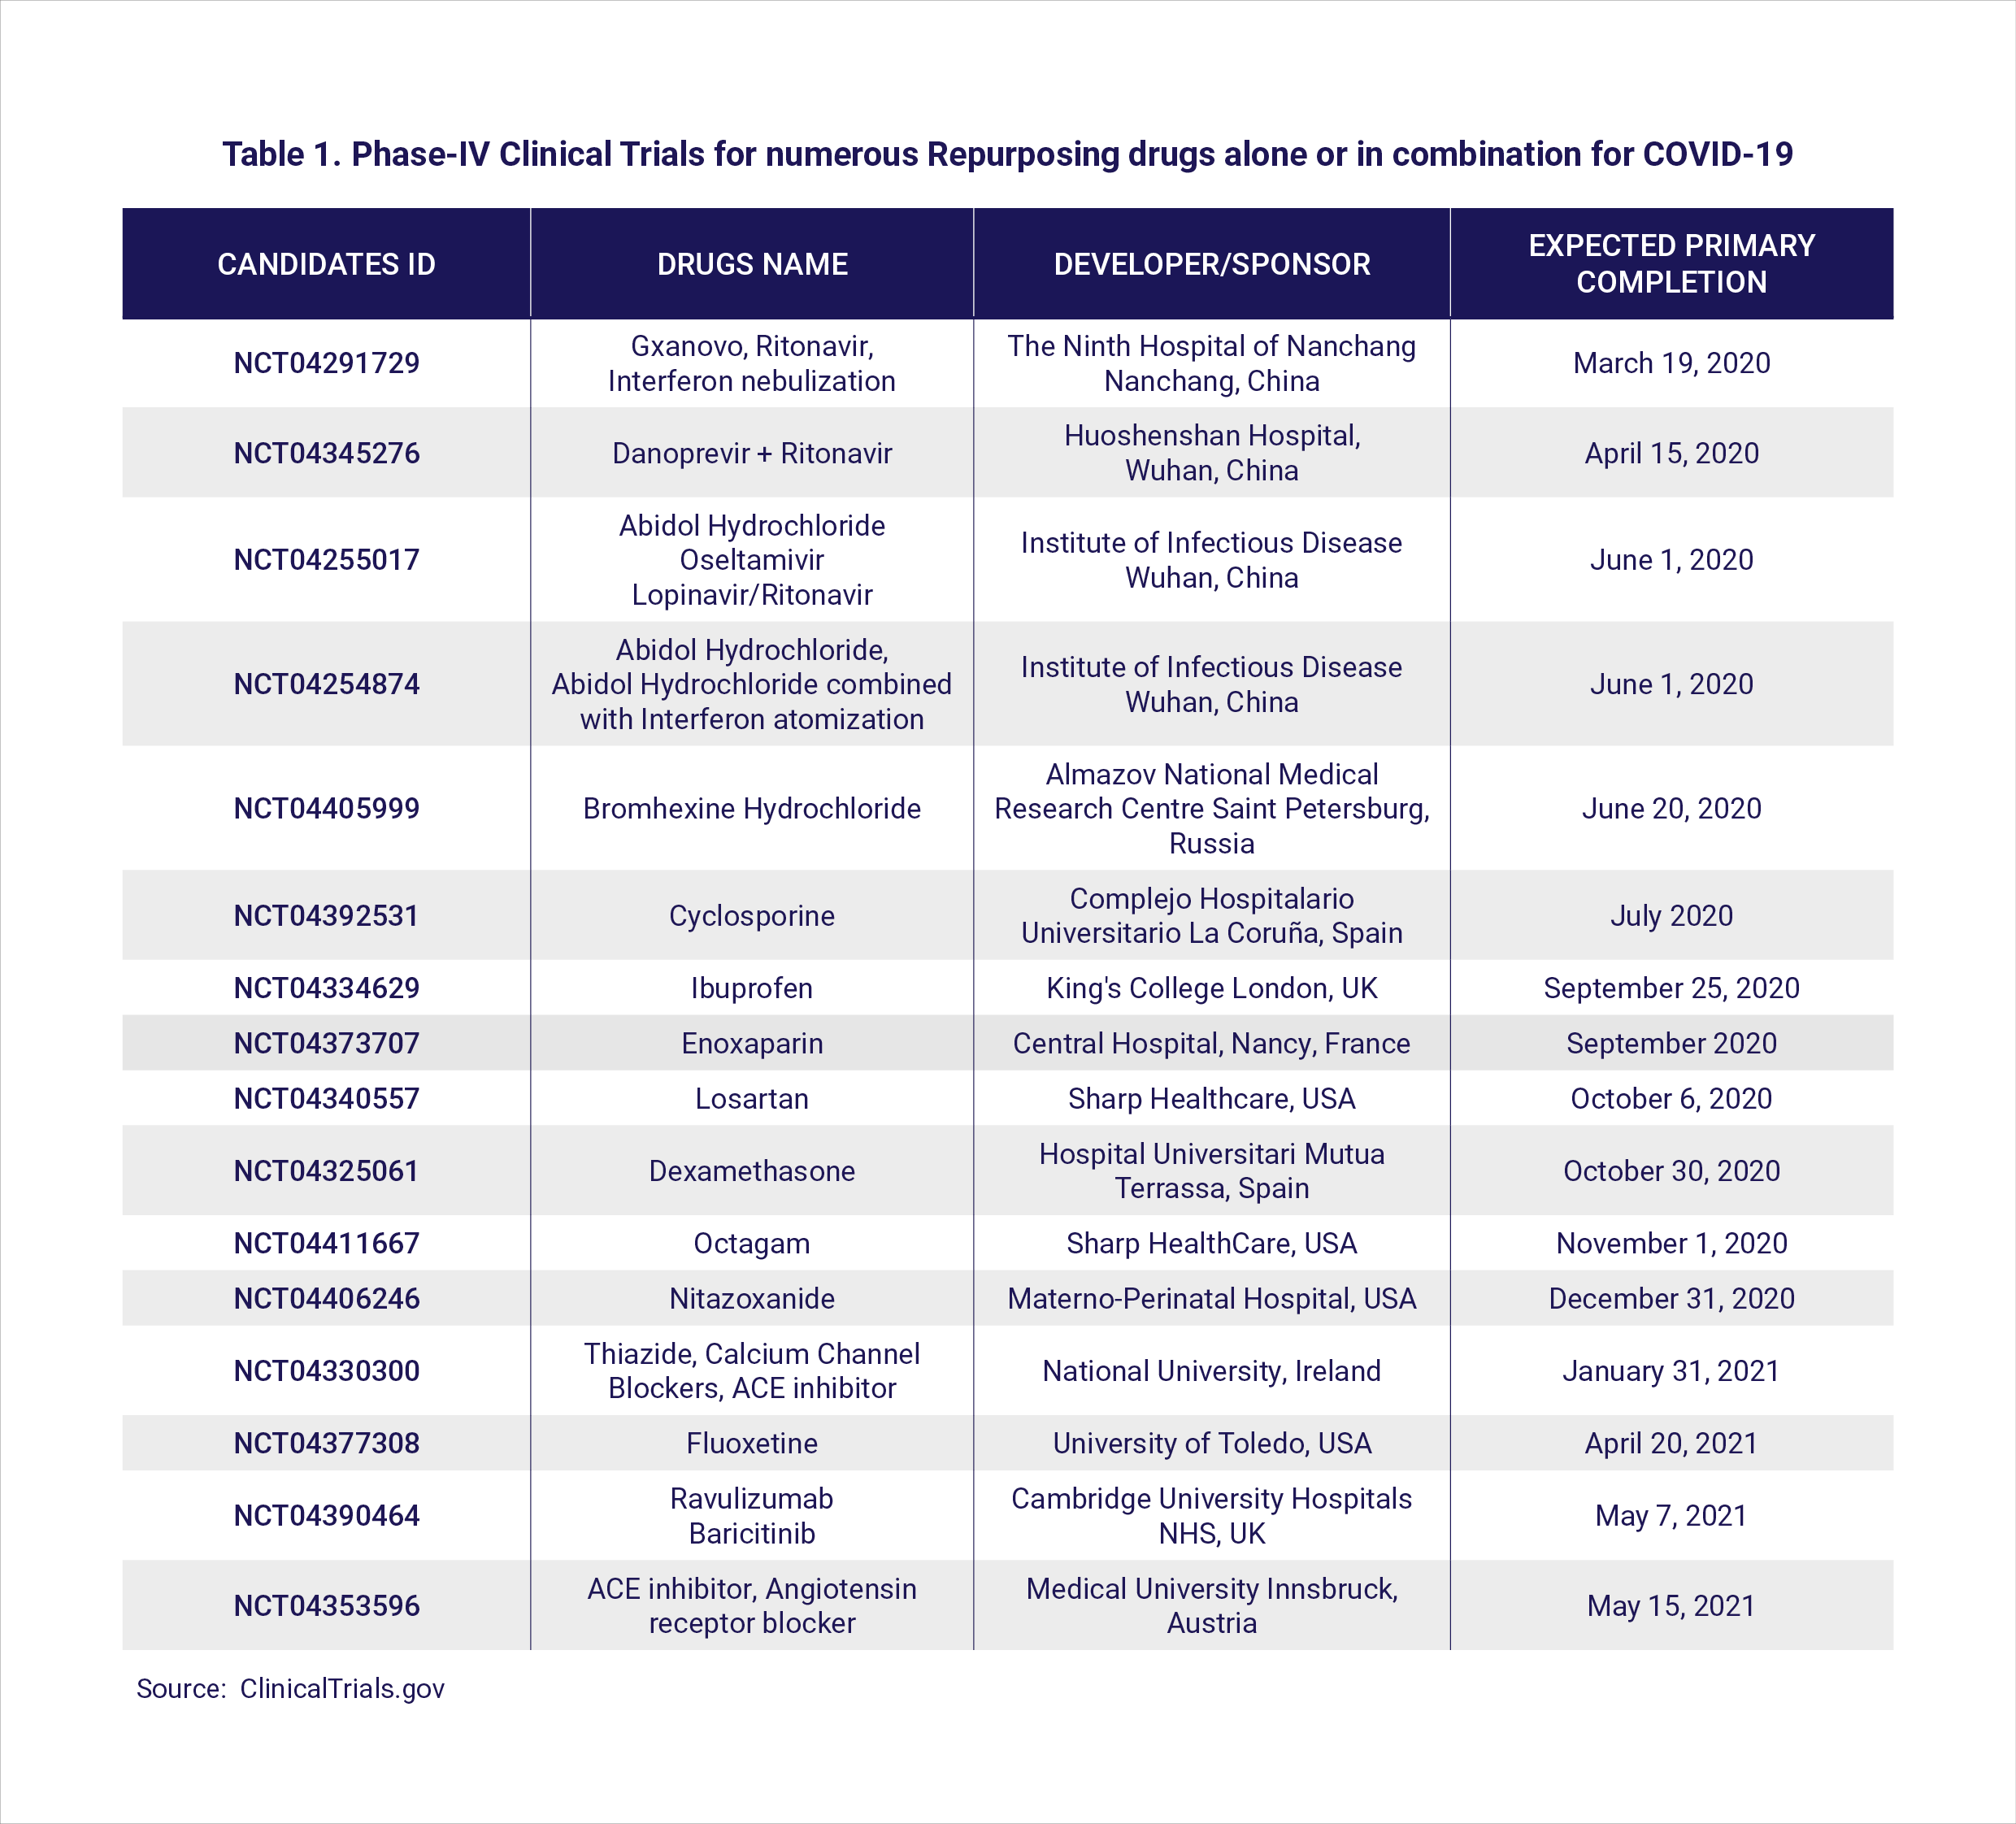 Table 1. Phase-IV Clinical Trials for numerous Repurposing drugs alone or in combination for COVID-19